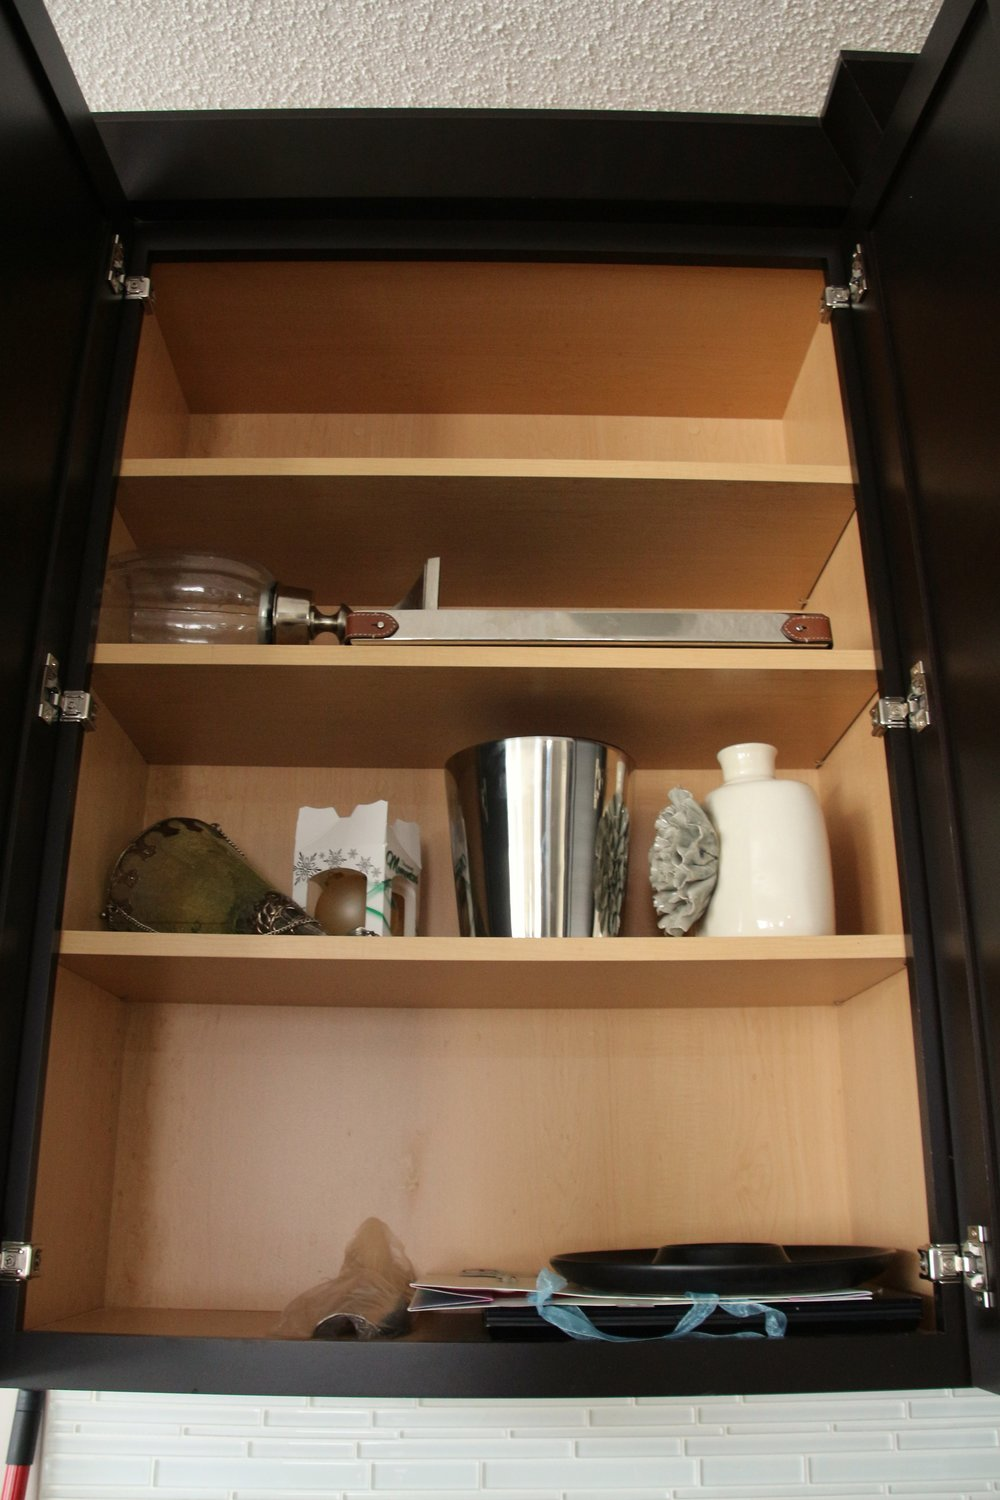 Before-Under utilized kitchen cupboard